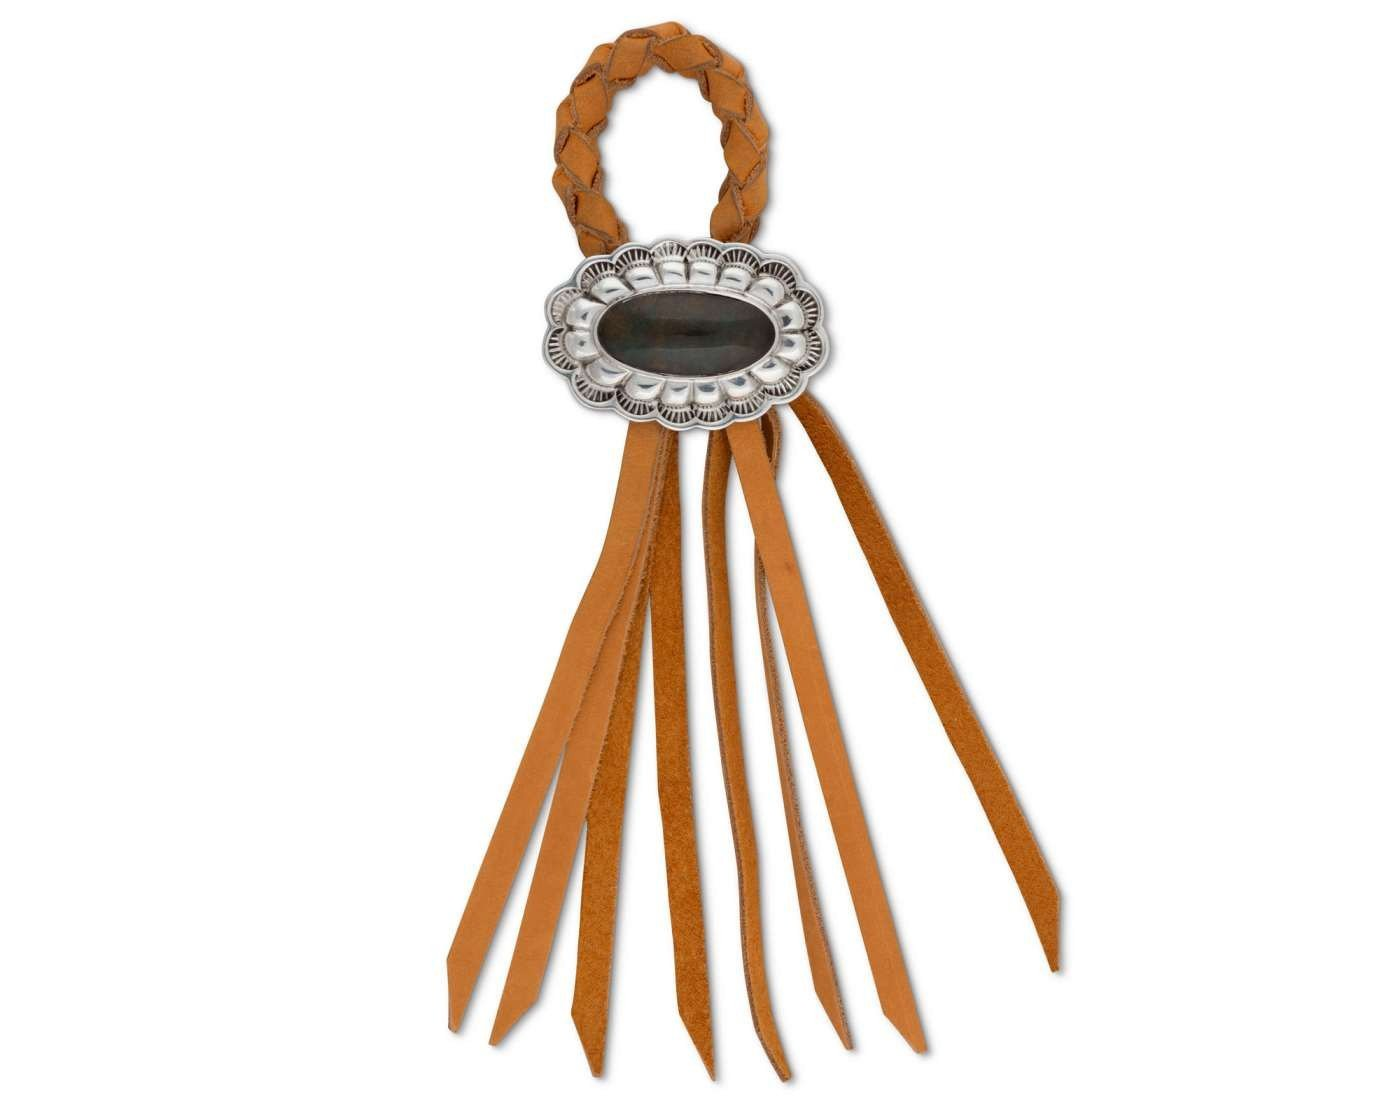 Vagabond House Napkin Ring Leather - Concho